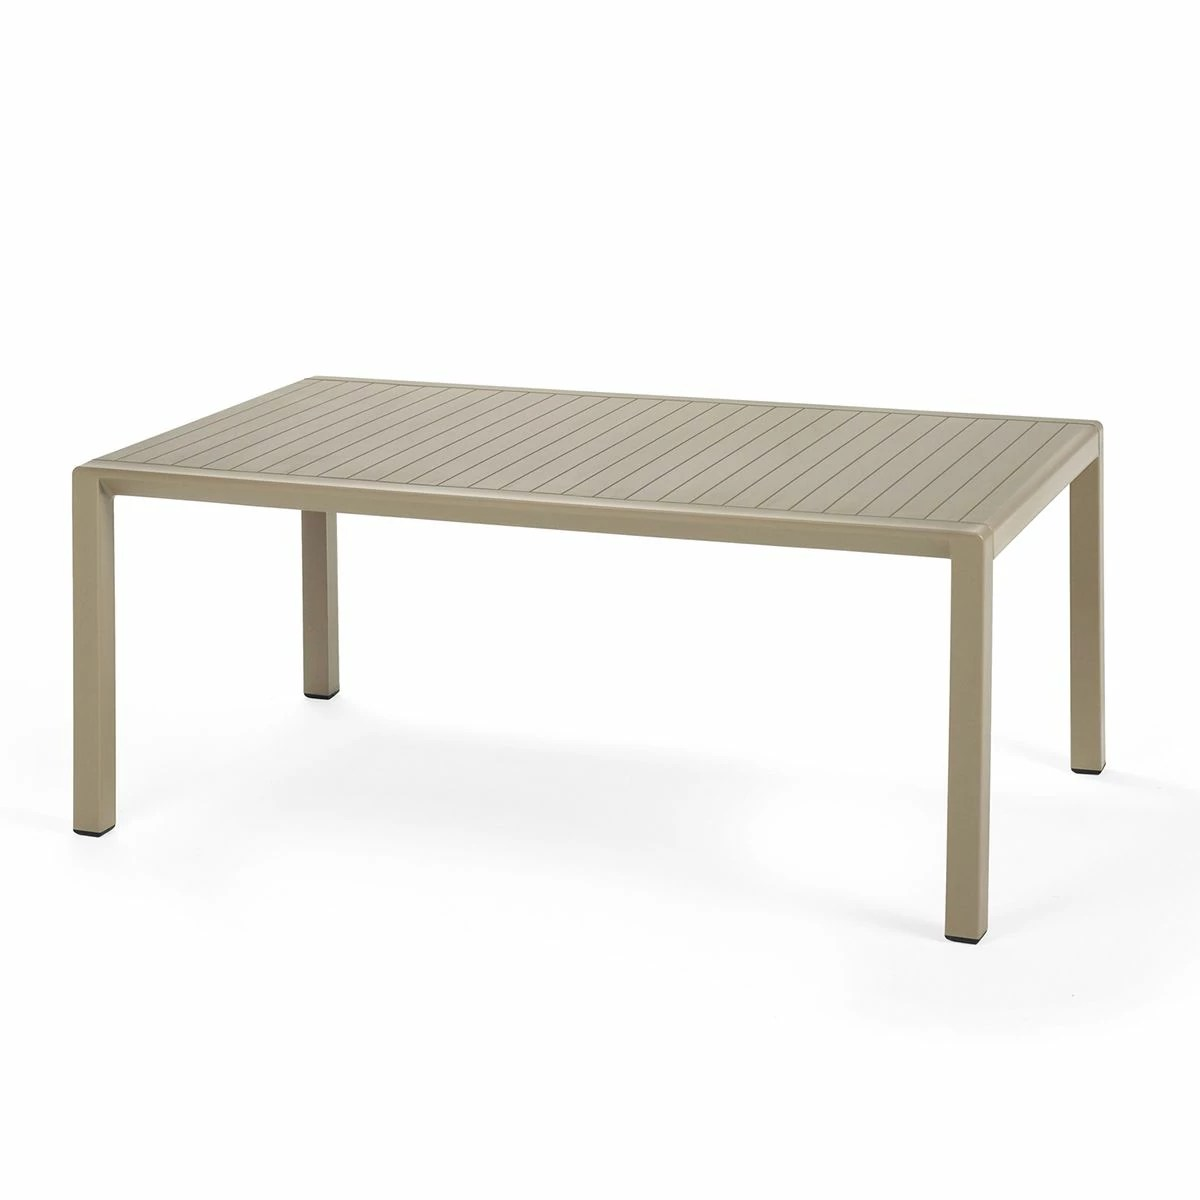 Tables Salon De Jardin Table Basse Salon De Jardin Design Aria Nardi - Zendart Design